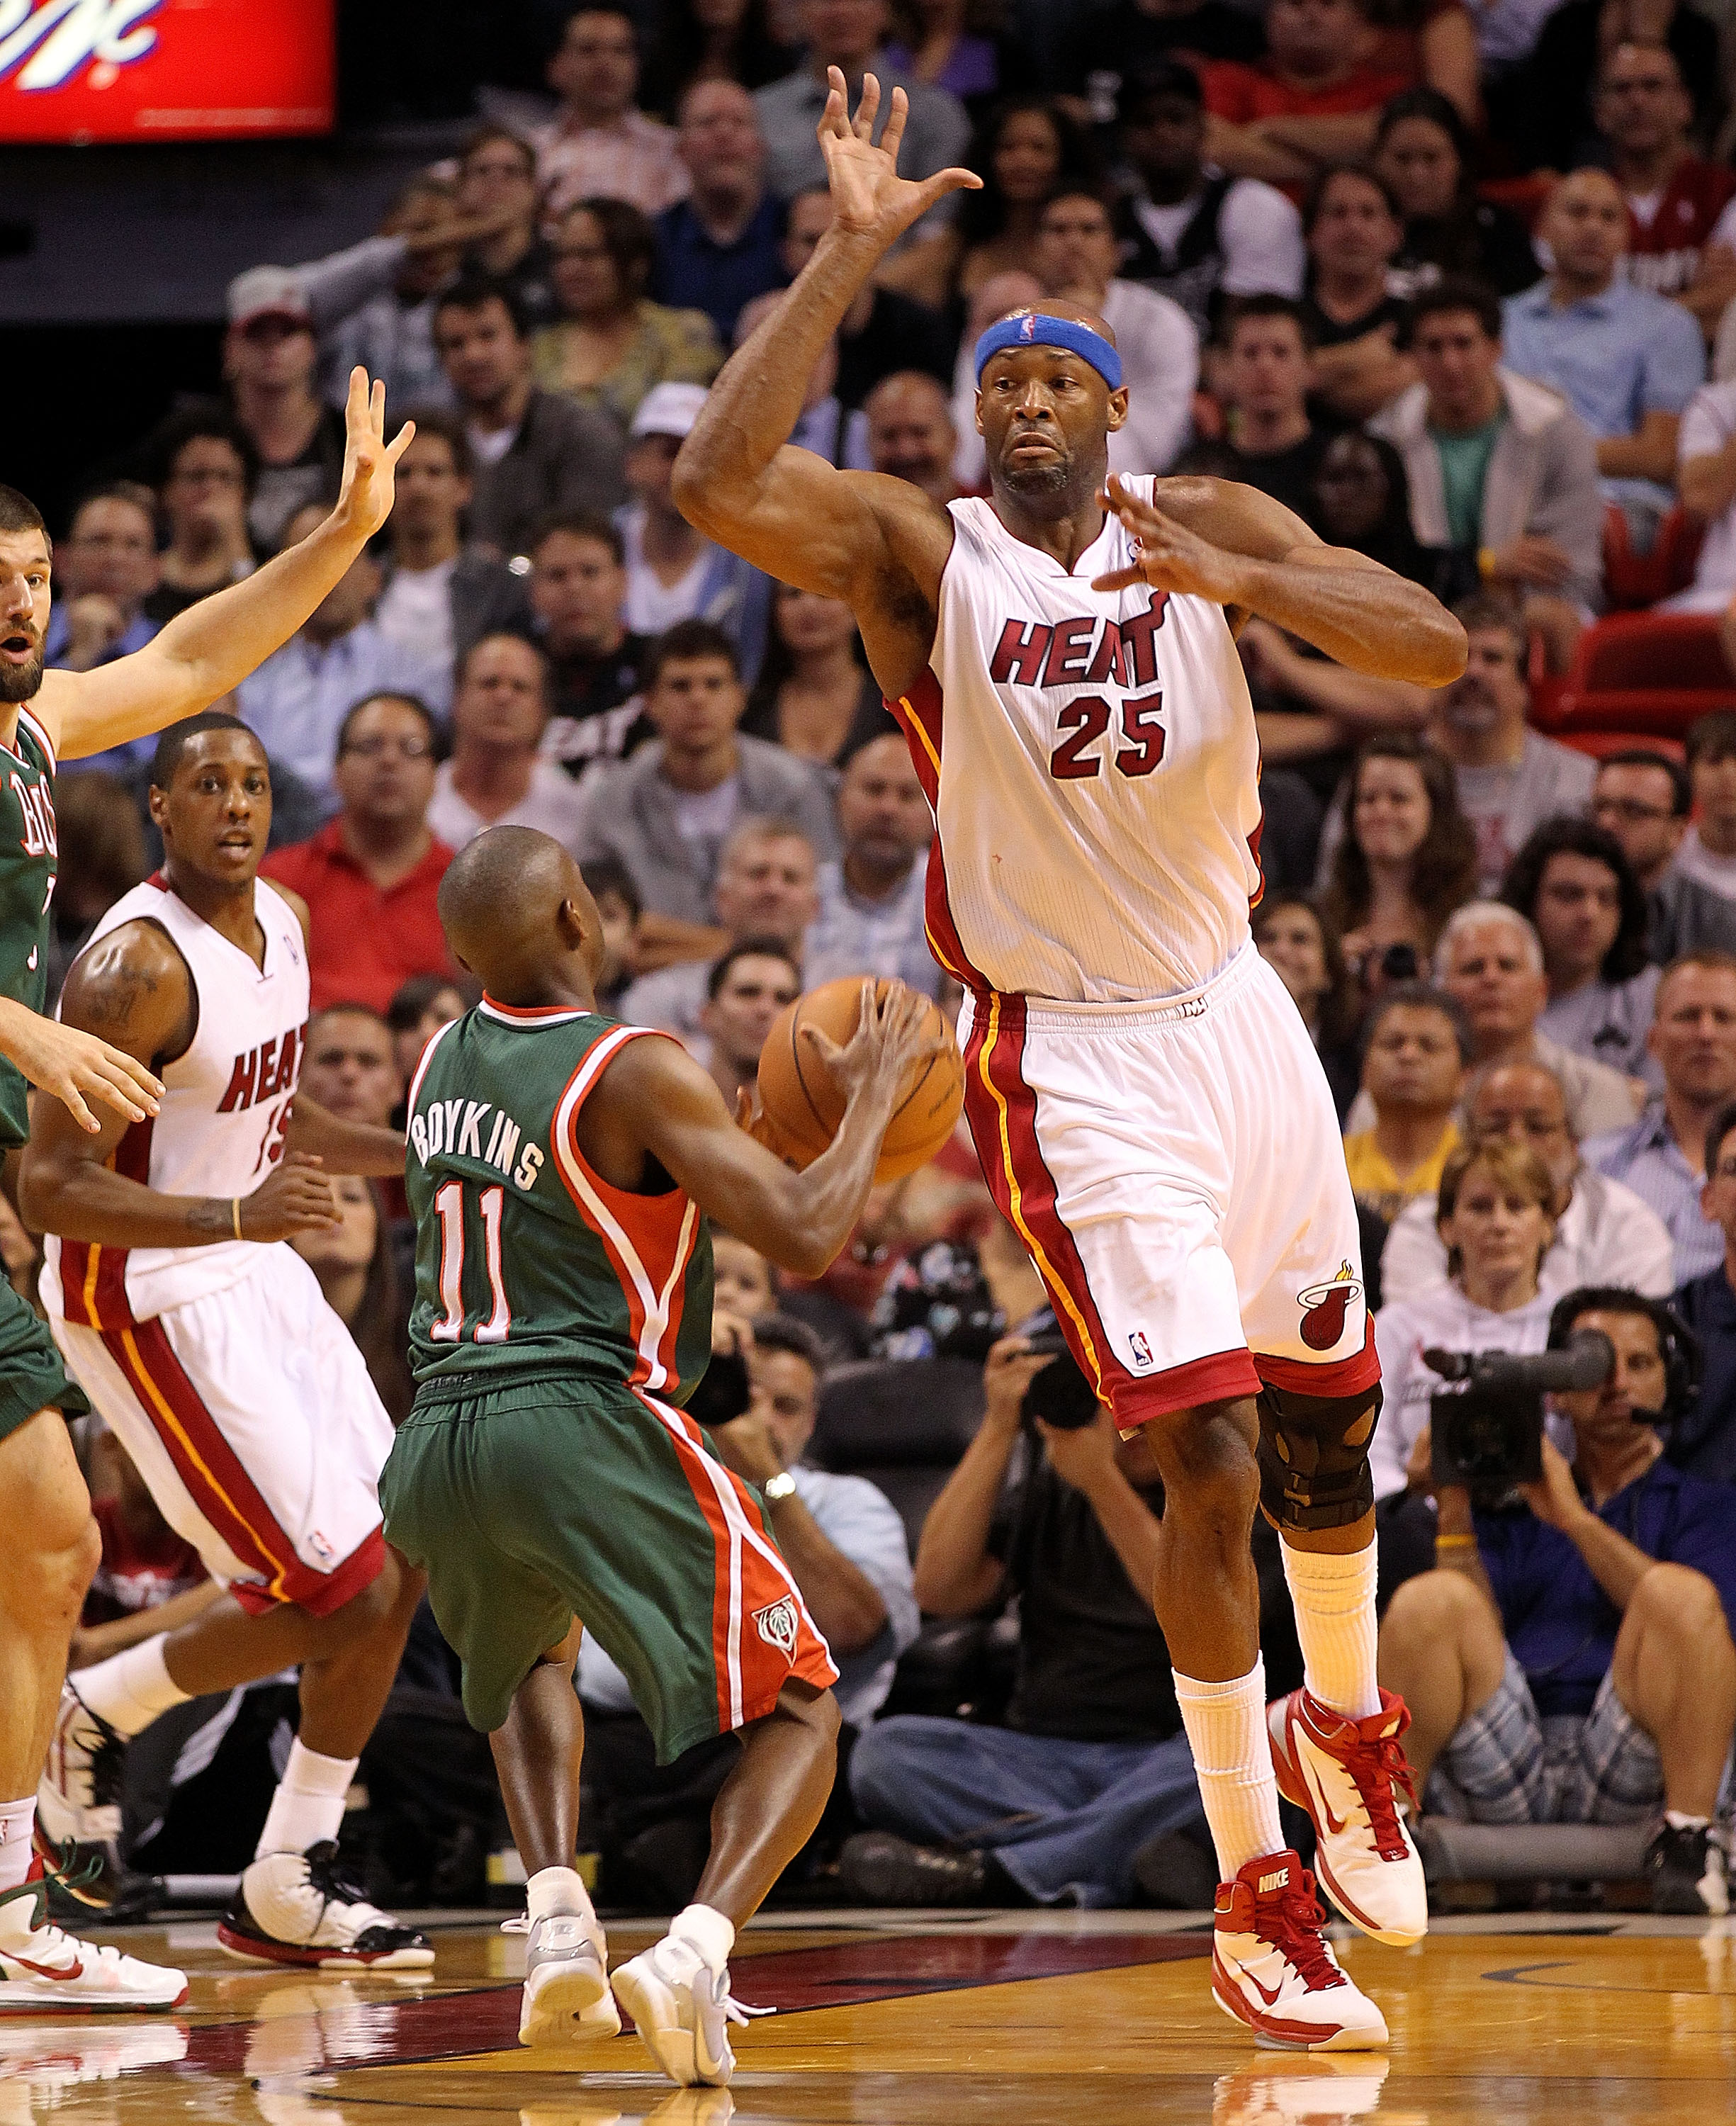 MIAMI, FL - JANUARY 04: Erick Dampier #25 of the Miami Heat guards Earl Boykins #11 of the Milwaukee Bucks during a game at American Airlines Arena on January 4, 2011 in Miami, Florida. NOTE TO USER: User expressly acknowledges and agrees that, by downloa